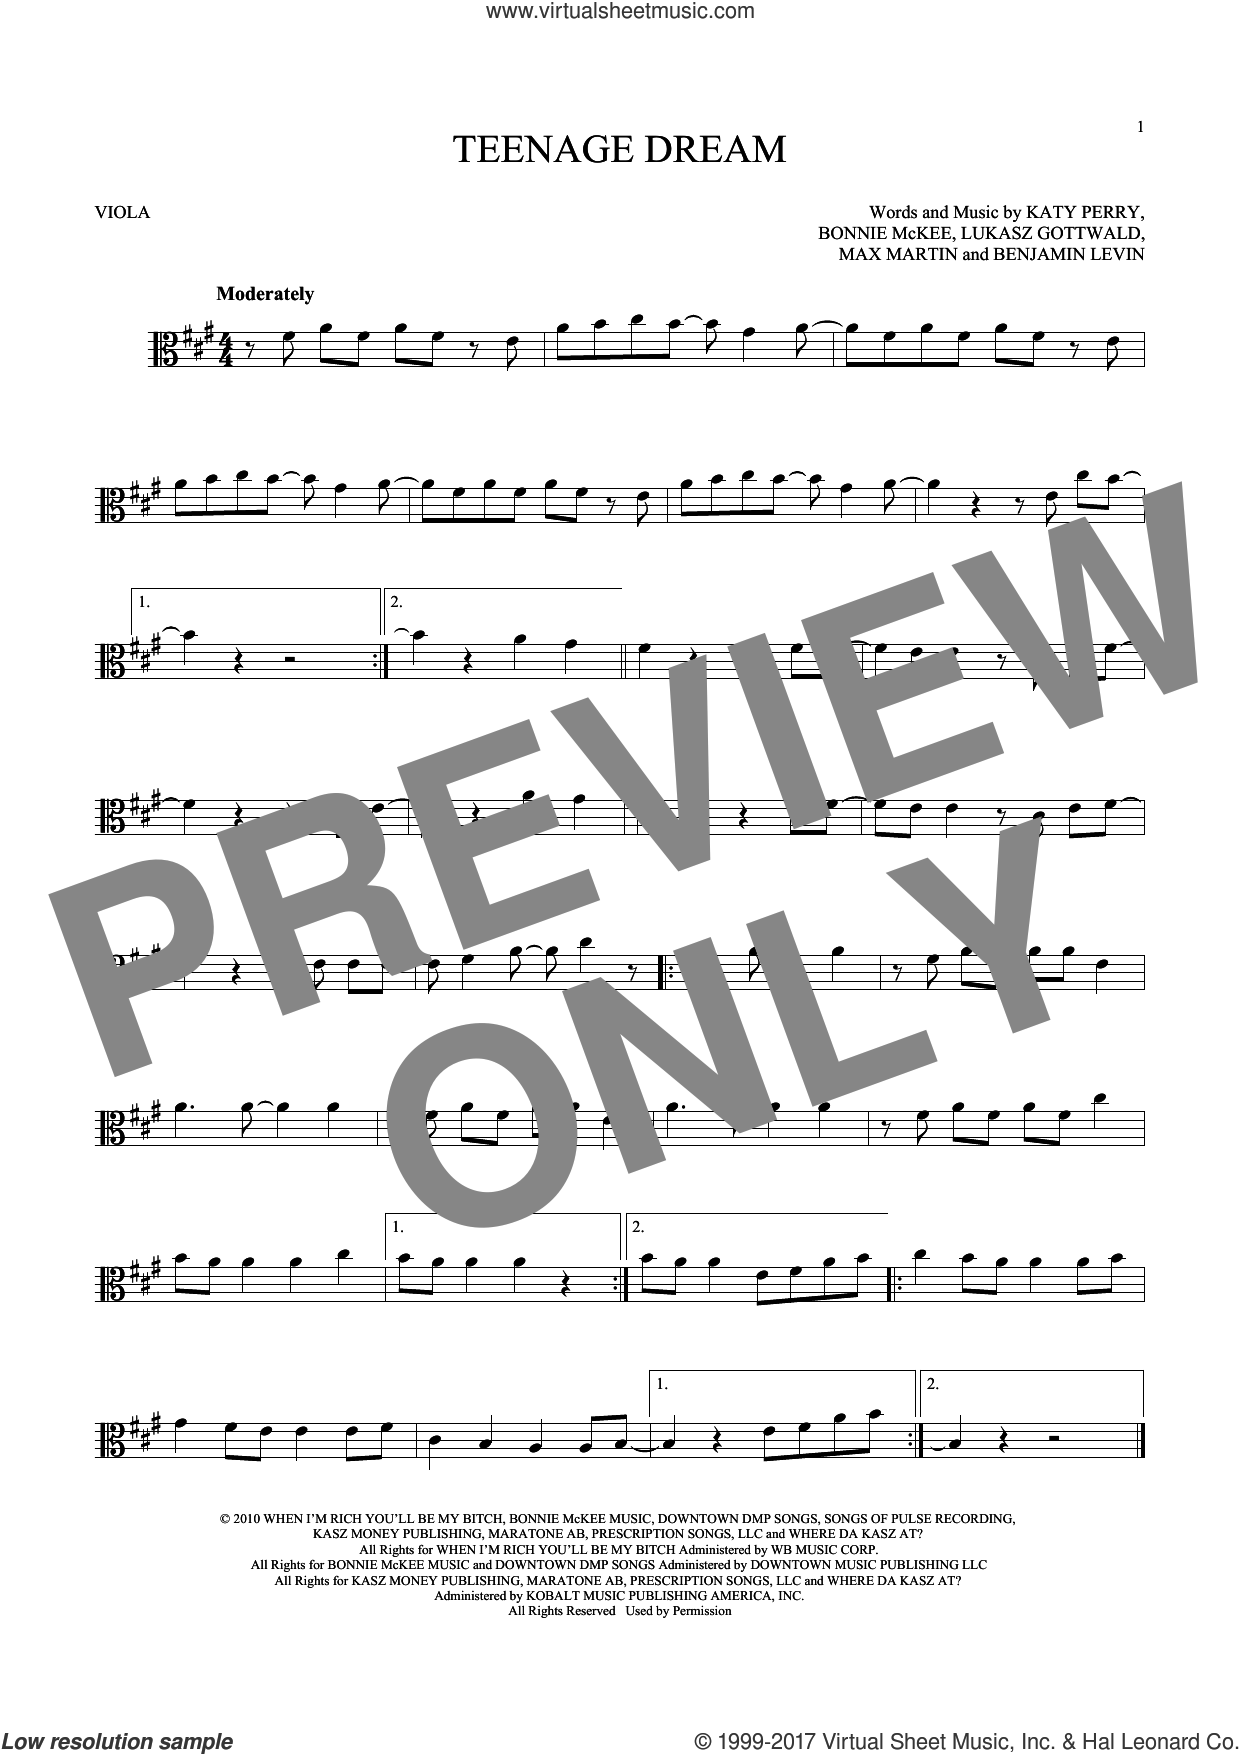 Teenage Dream sheet music for viola solo by Katy Perry, Benjamin Levin, Bonnie McKee, Lukasz Gottwald and Max Martin, intermediate